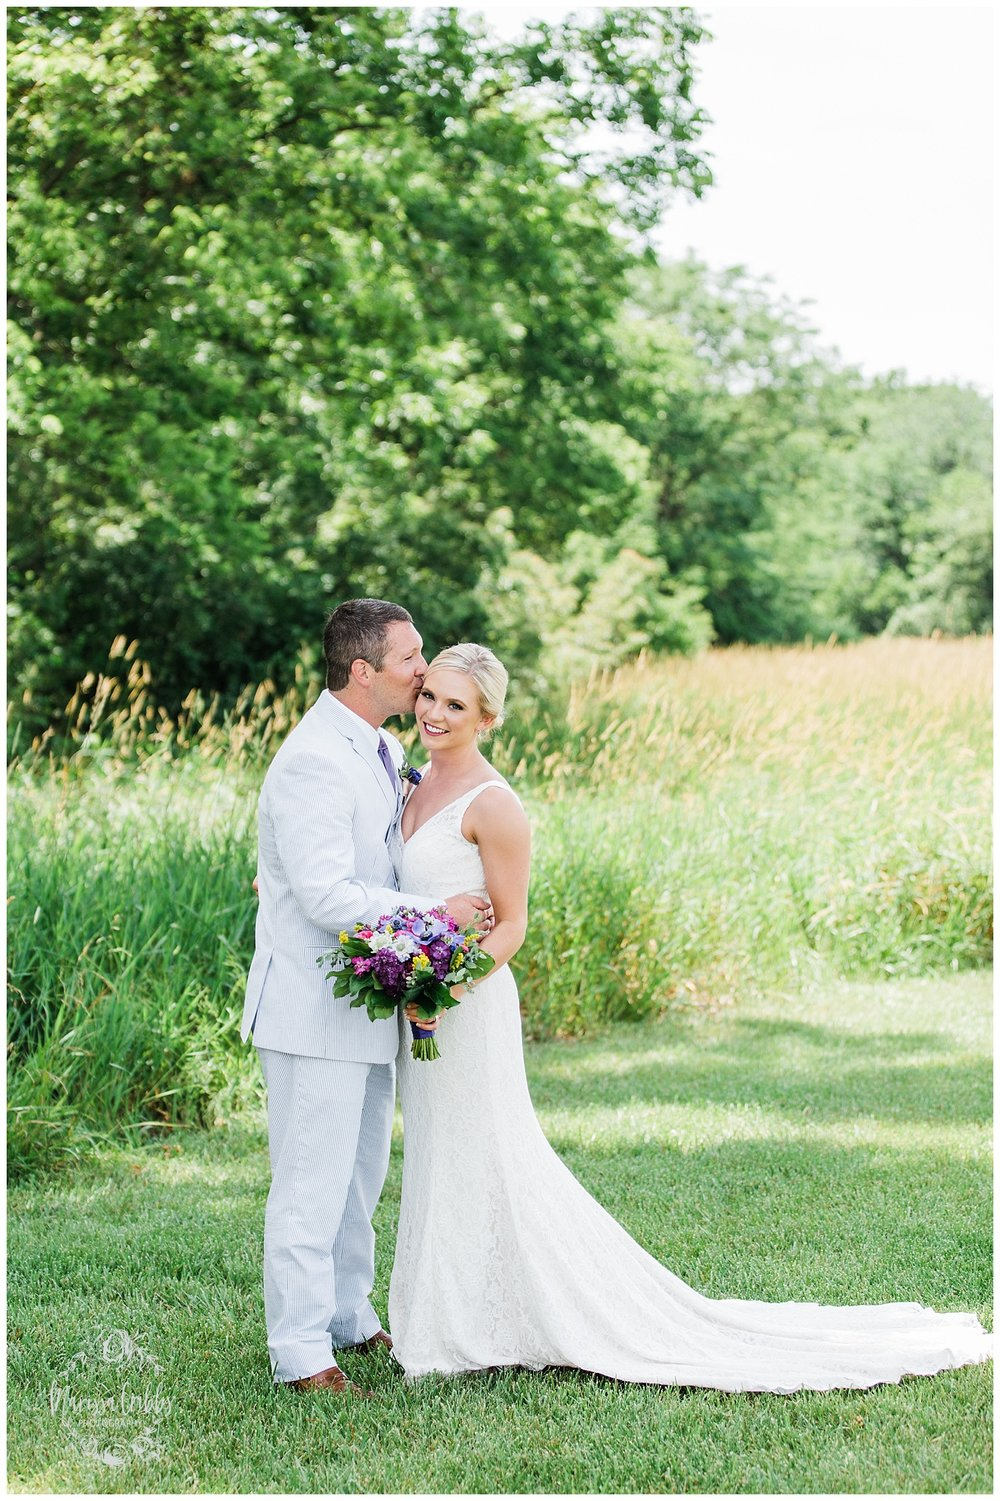 ALLISON & KEVIN WEDDING AT ST ANDREWS GOLF COURSE | MARISSA CRIBBS PHOTOGRAPHY_1699.jpg